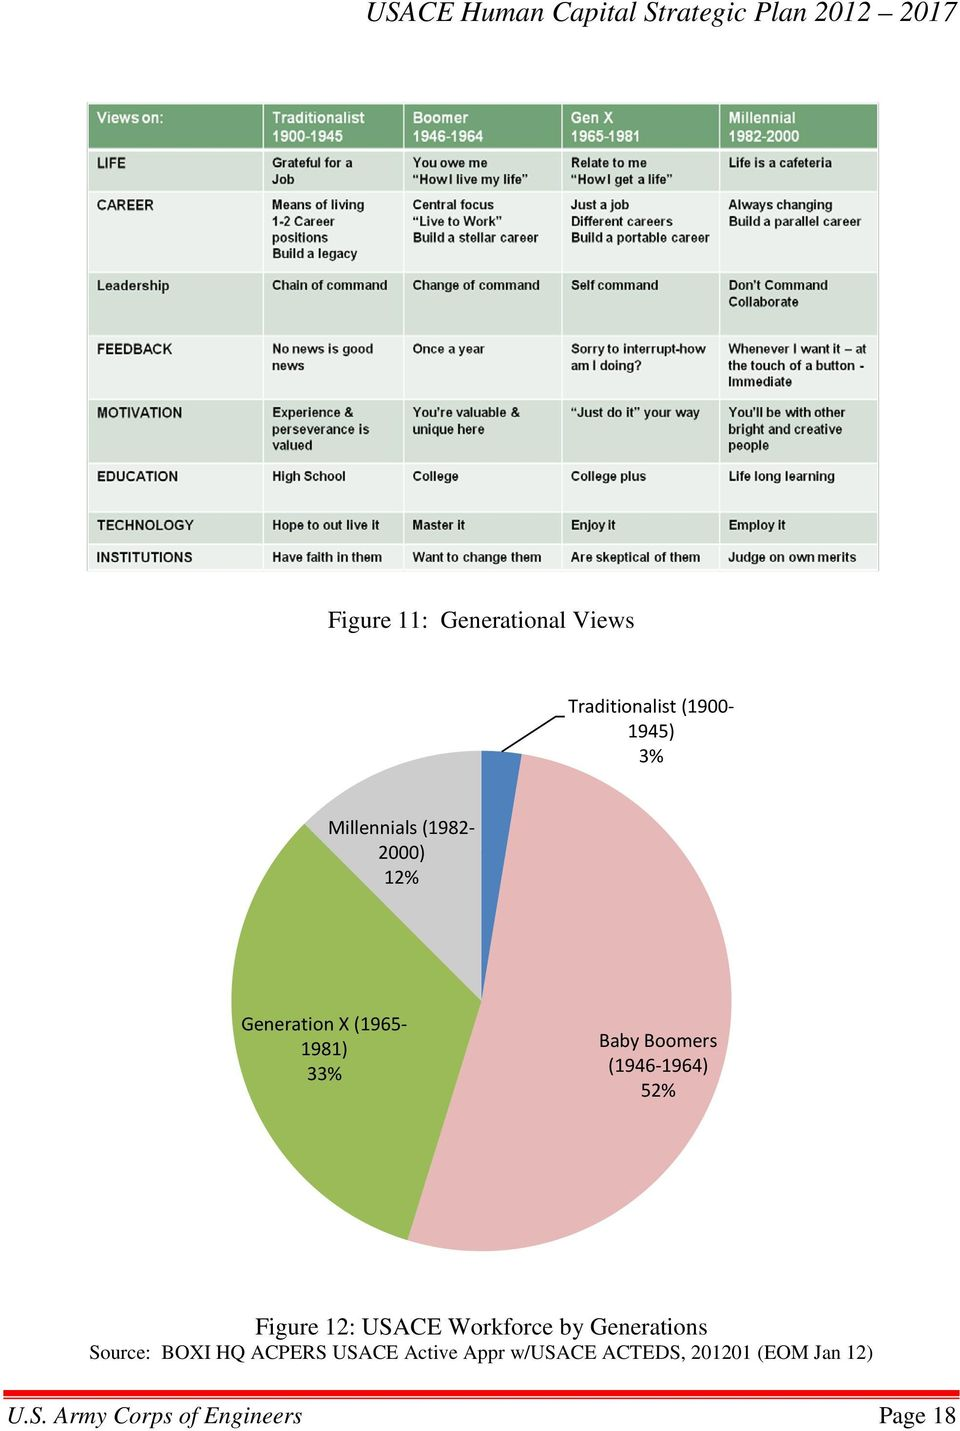 Figure 12: USACE Workforce by Generations Source: BOXI HQ ACPERS USACE